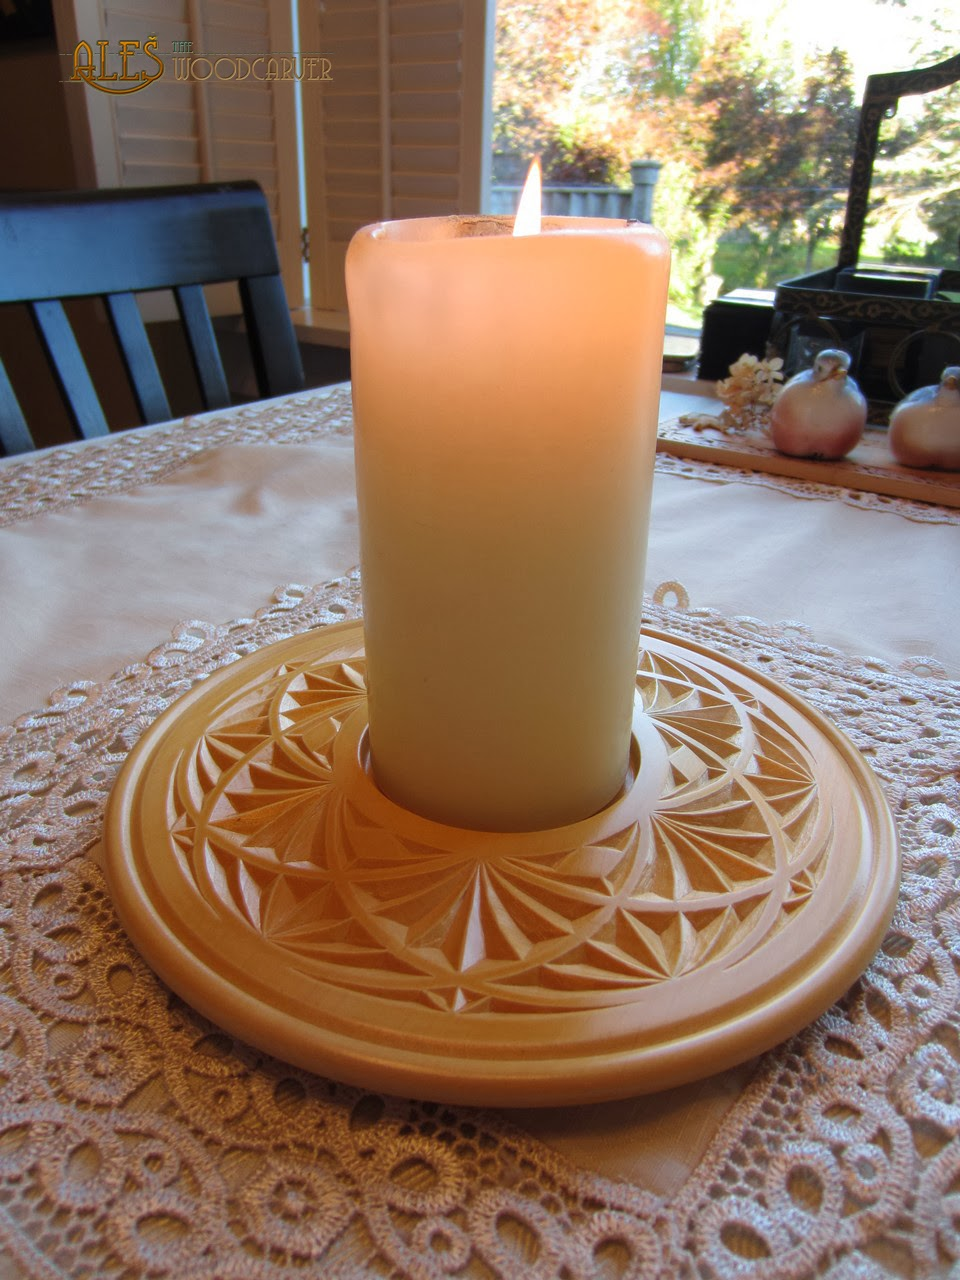 Ales the woodcarver candle holder chip carving